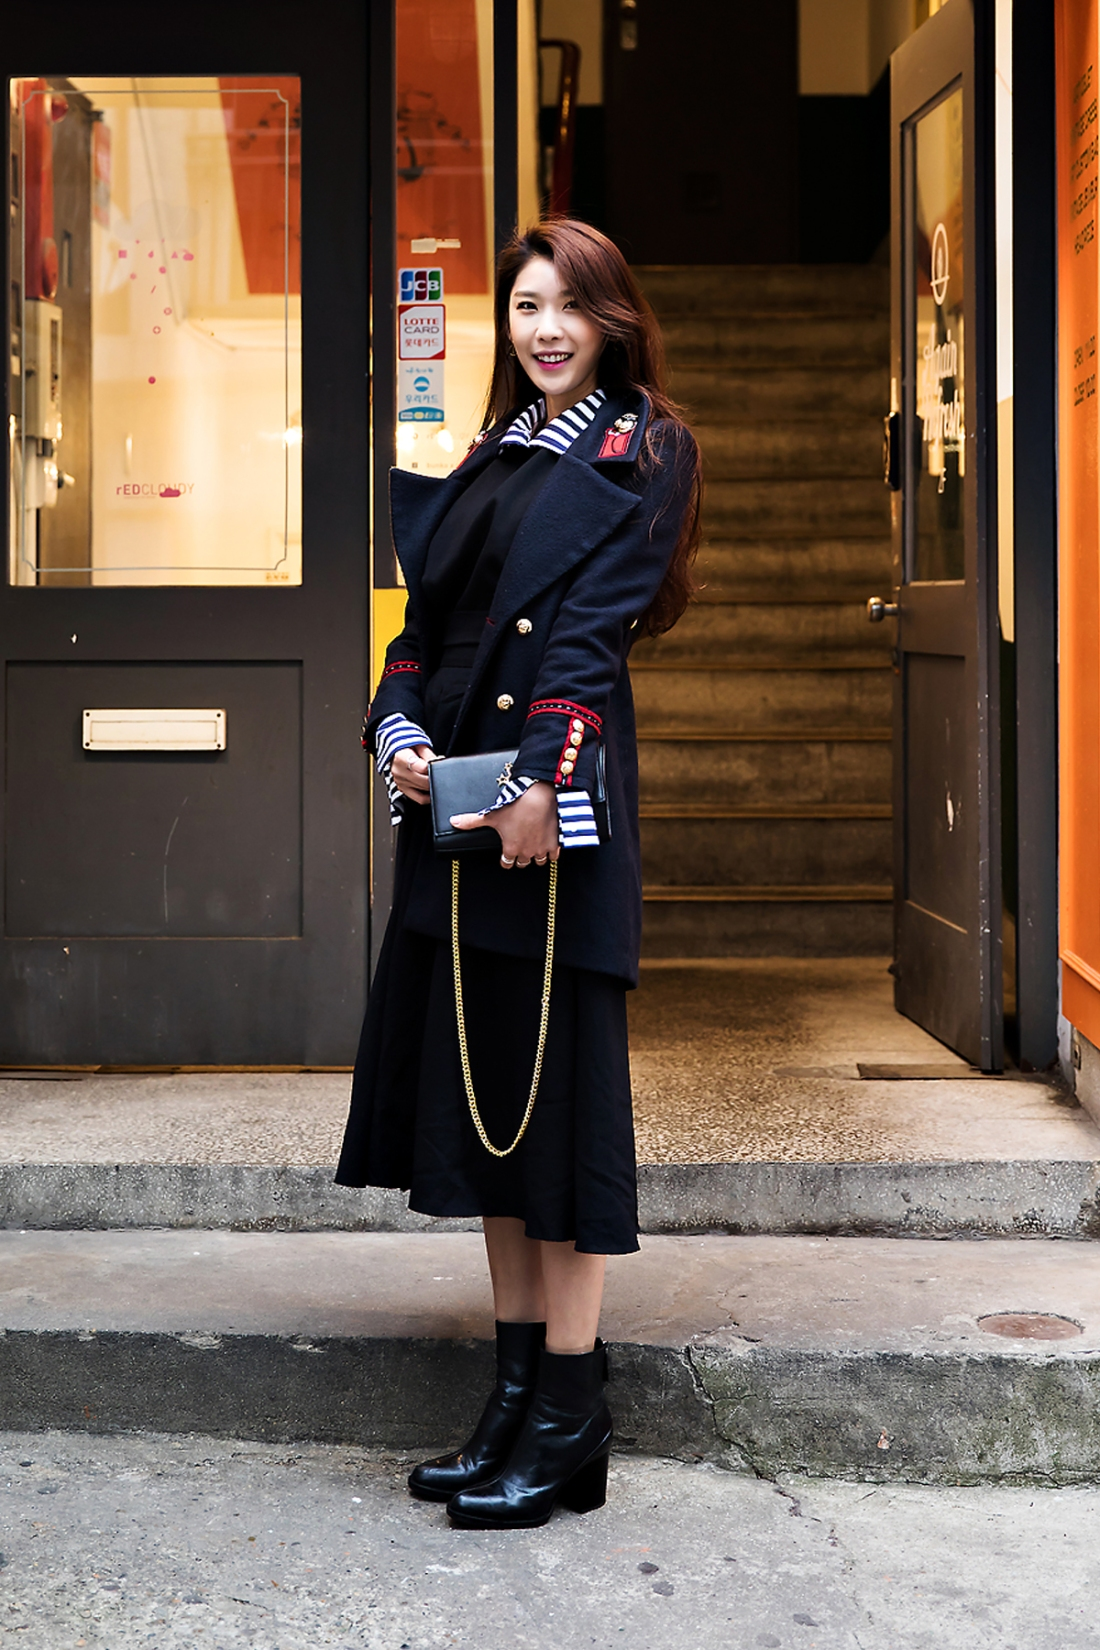 Lee Kyungyoung, Street Fashion 2017 in SEOUL.jpg